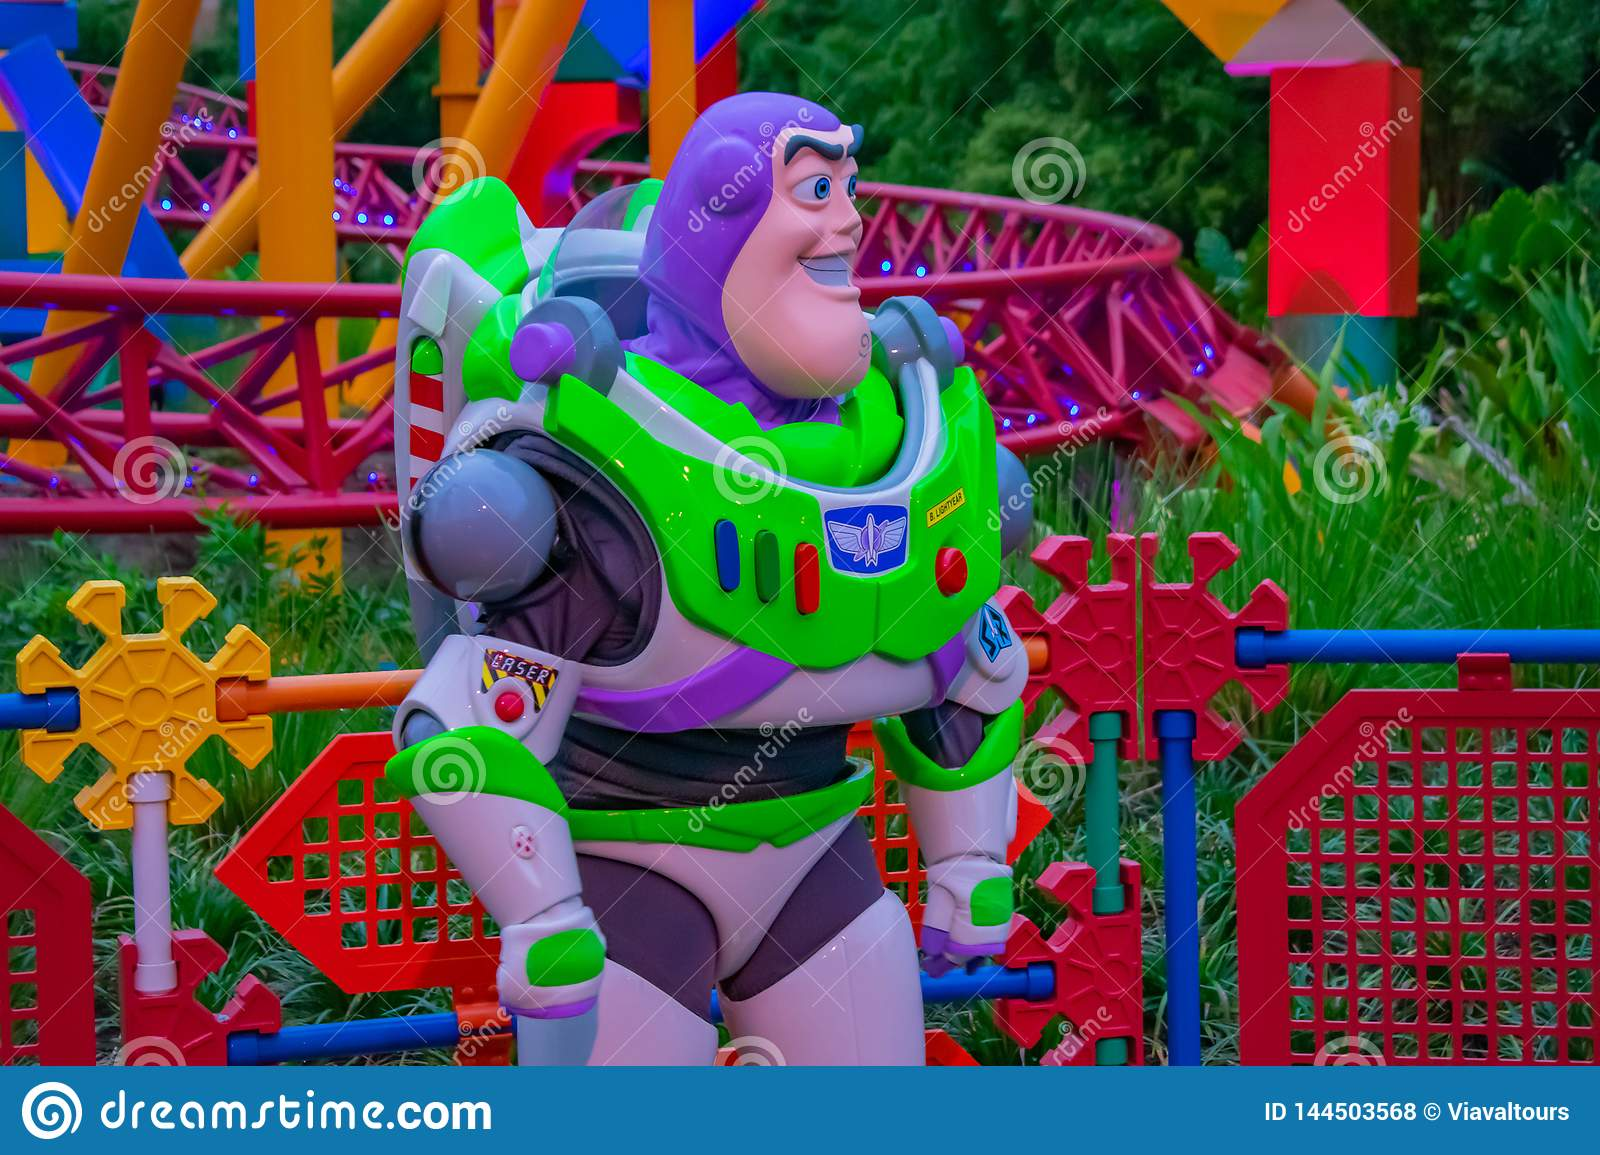 Buzz Lightyear on colorful background in Hollywood Studios at Walt Disney World area  1